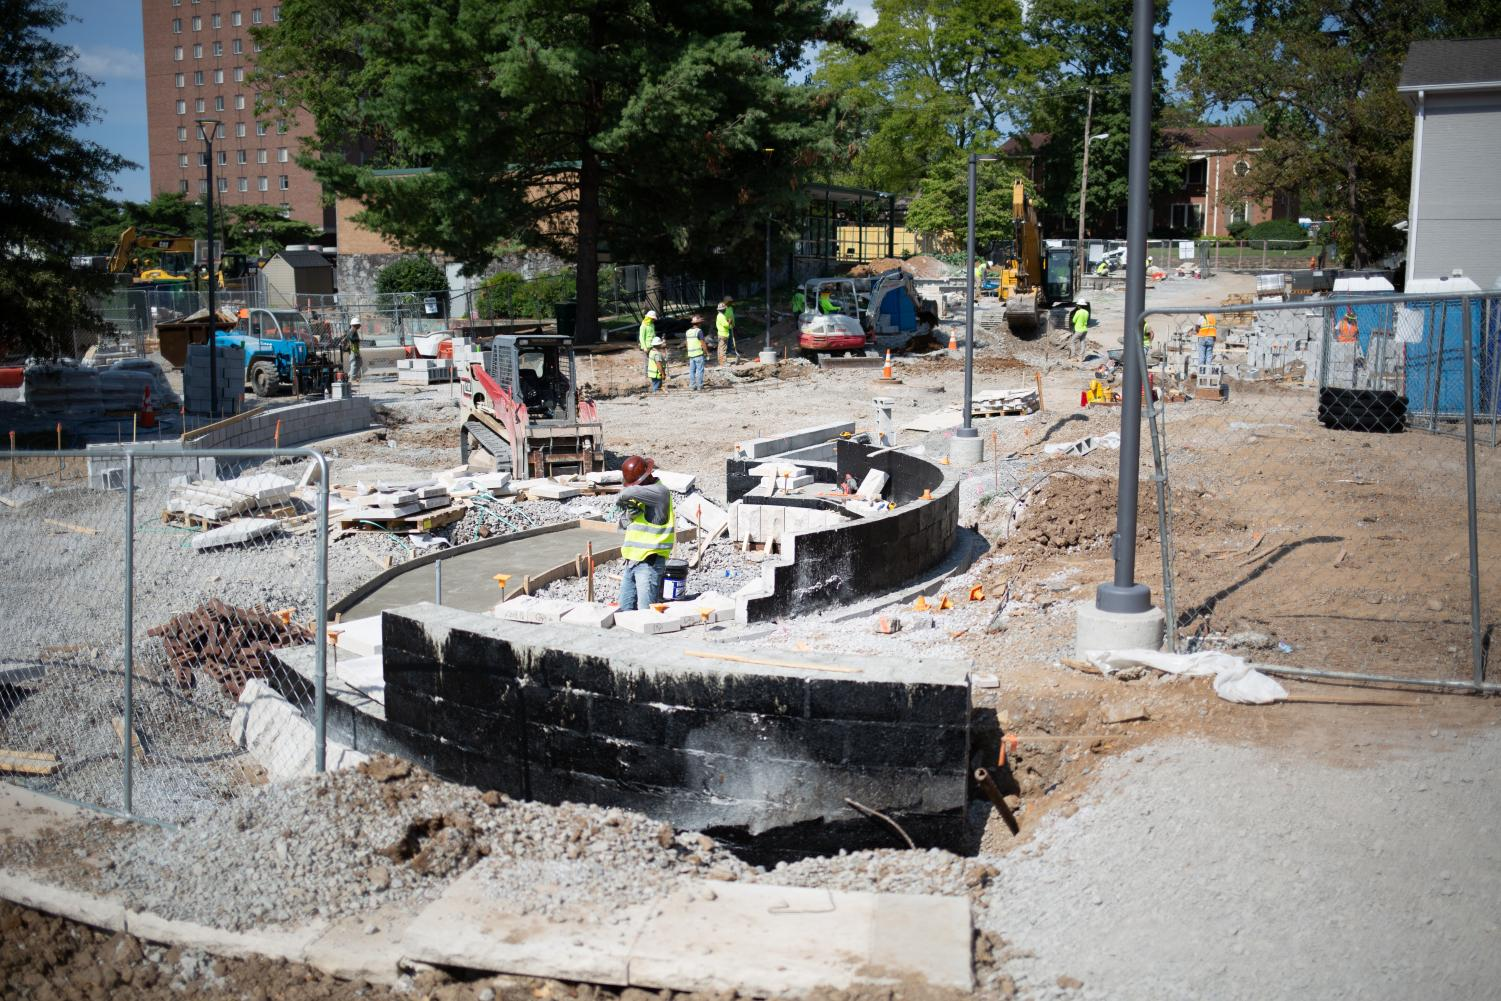 A construction crew works to transition Kensington Pl. to a green space on Aug. 18 as part of the redesign of the West End Neighborhood.